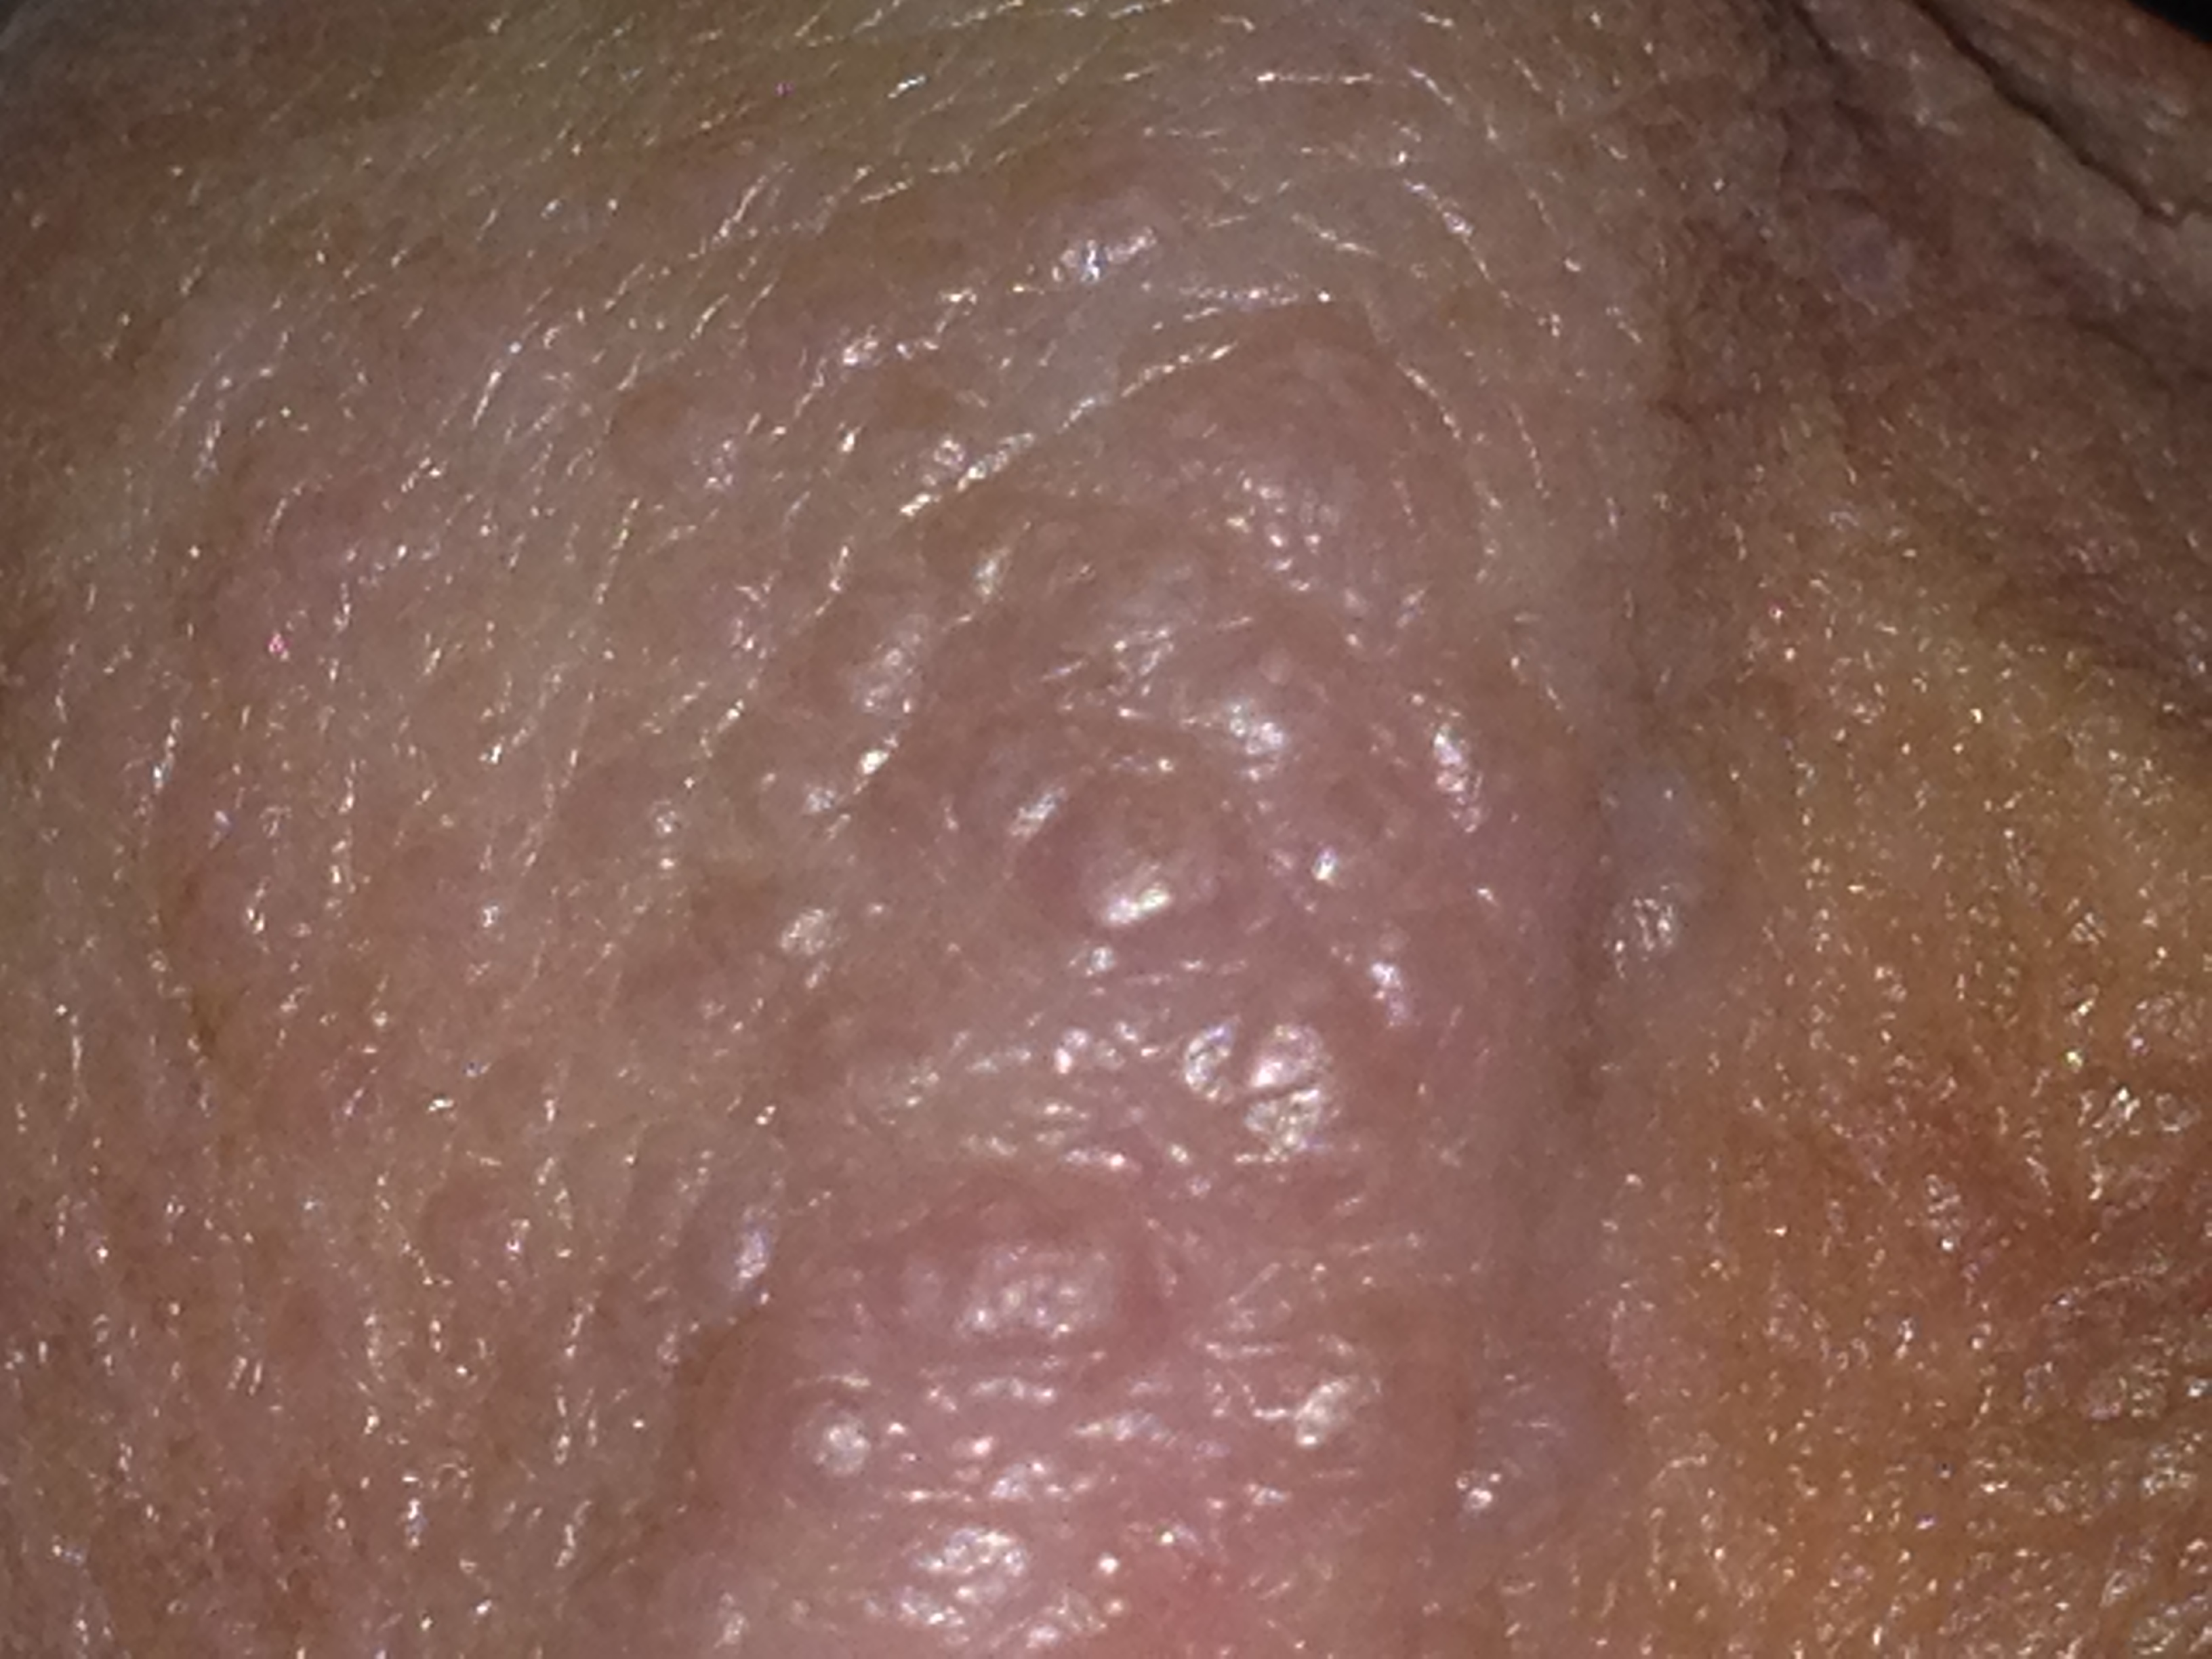 Small White Bumps On Penile ShaftHerpes Penile Shaft